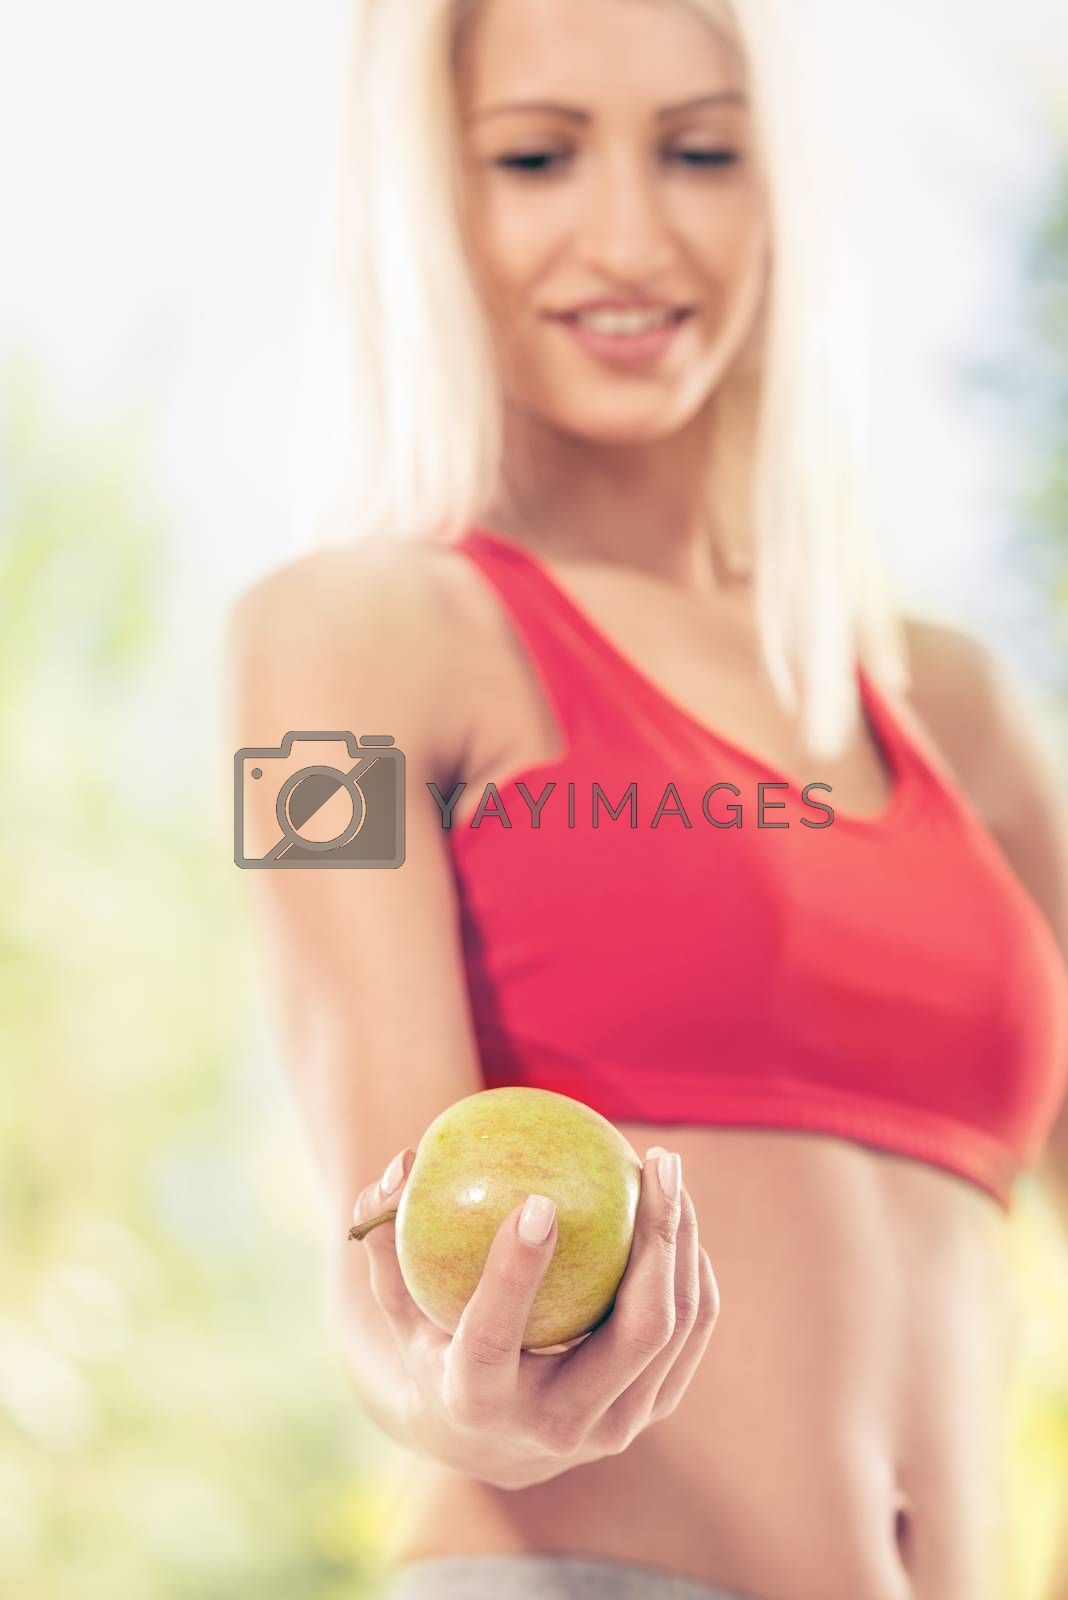 Woman holding apple. Focus on apple. Dieting concept.